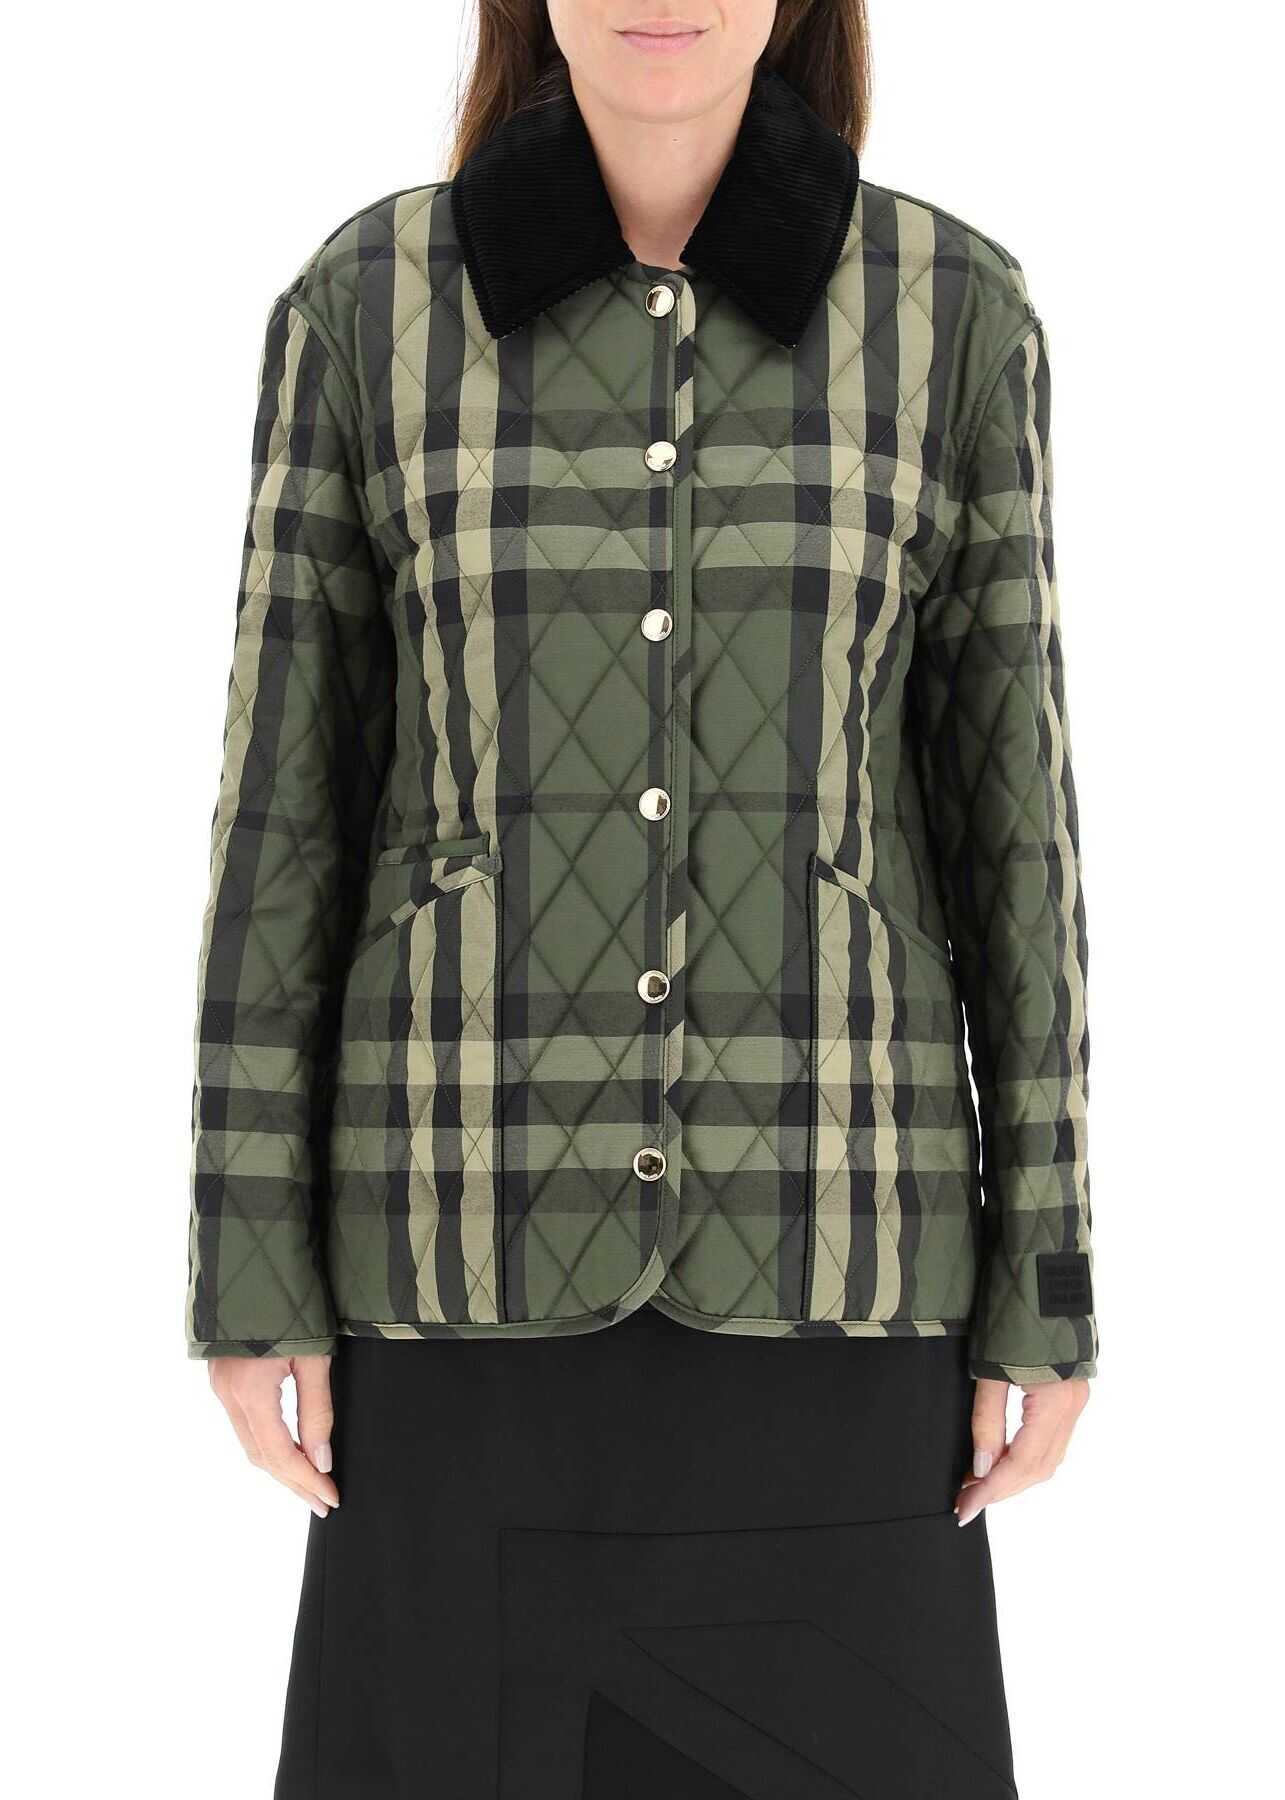 Burberry Dranefeld Quilted Jacket 8043199 DARK MILITARY GREEN image0